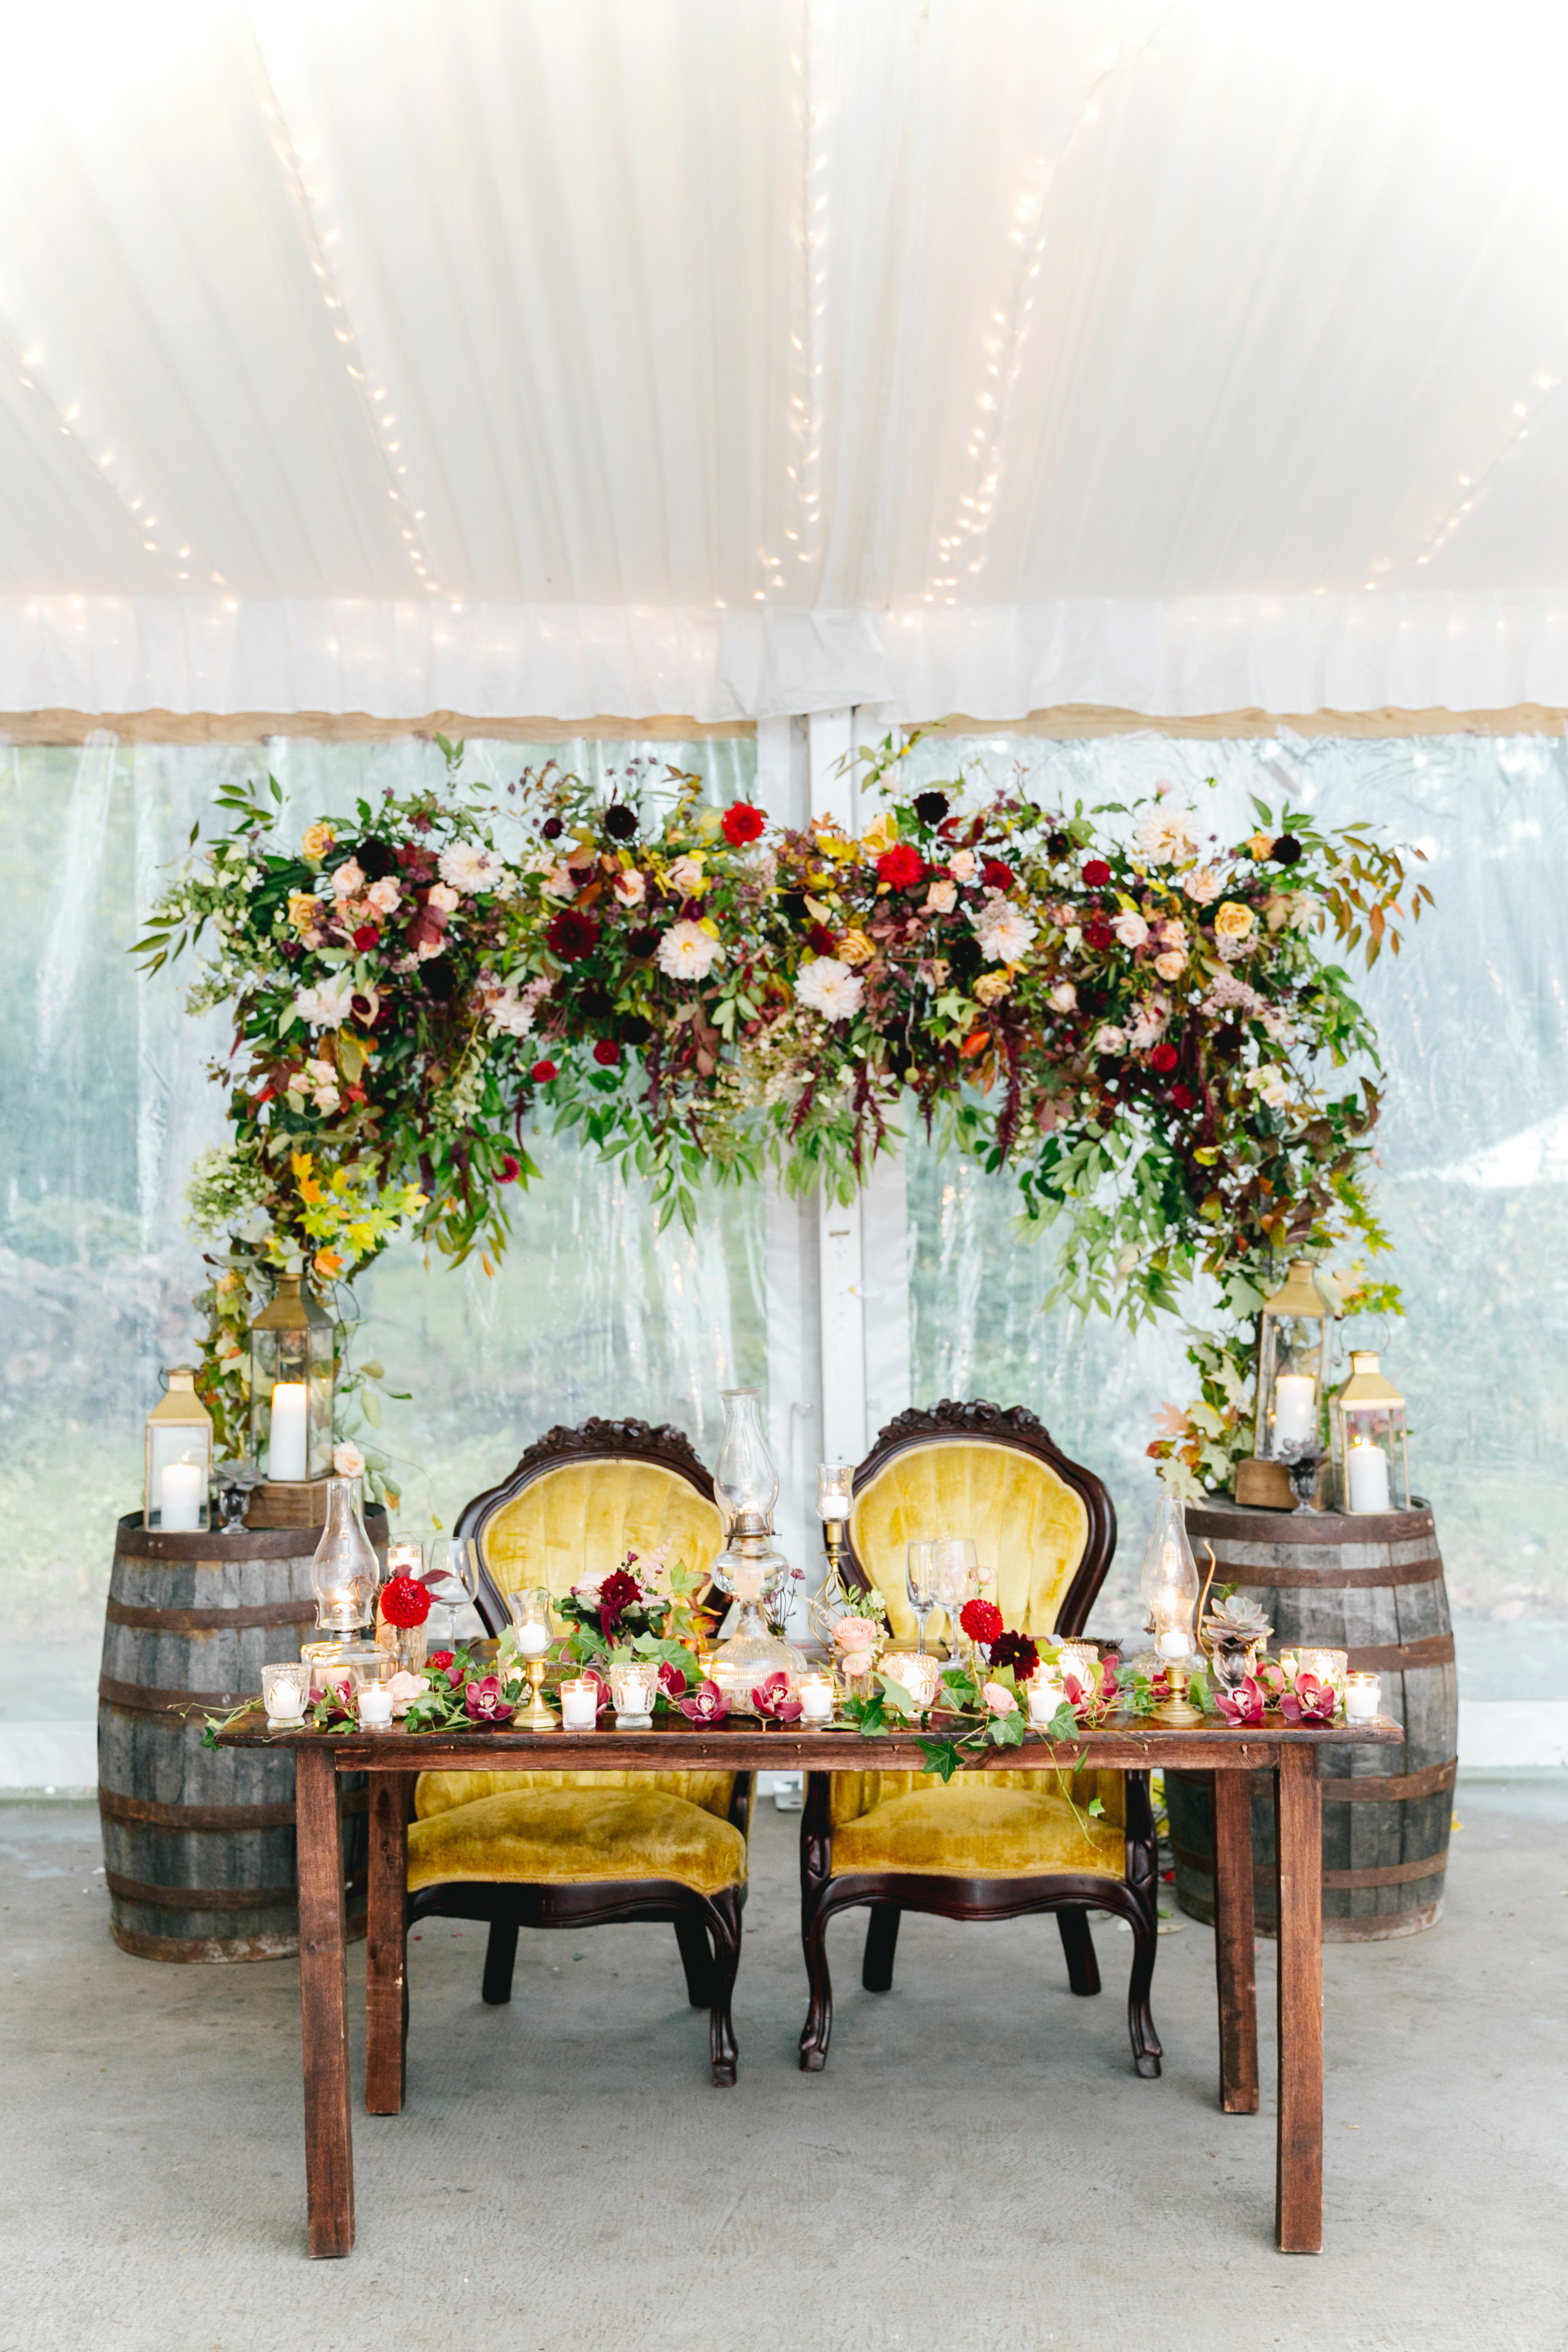 sweetheart table floral arch yellow chairs and barrels